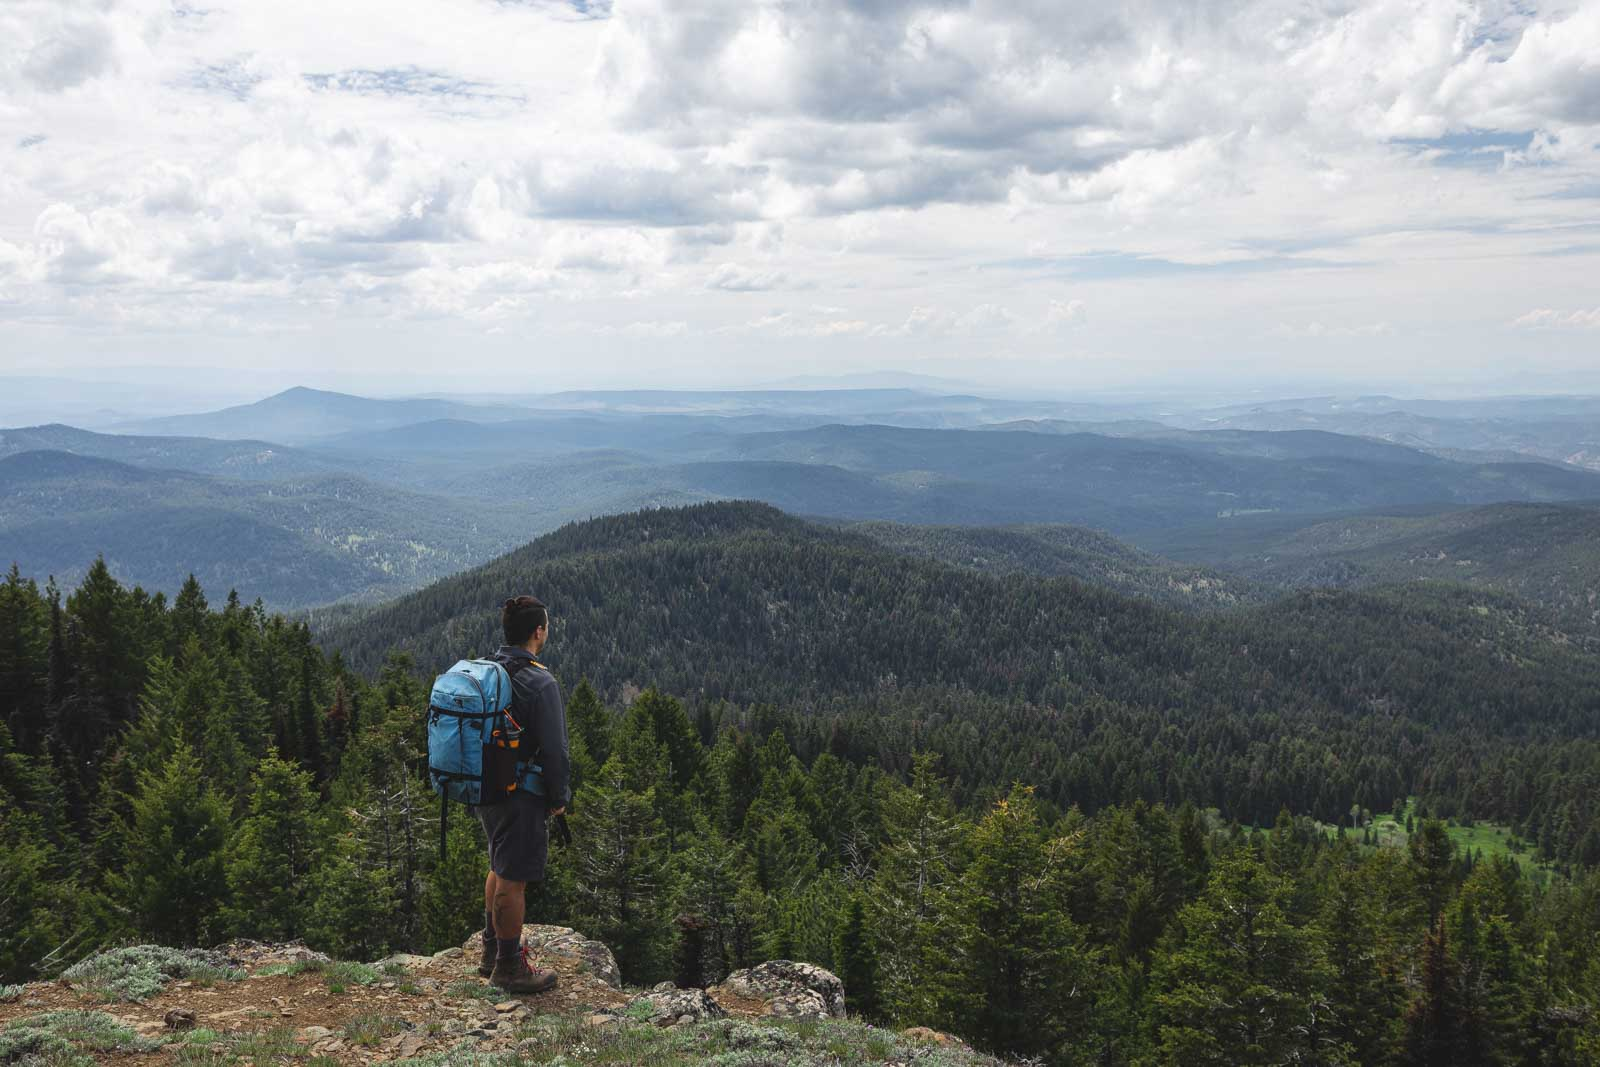 A fun hike in Ochoco National Forest is Lookout Mountain trail.